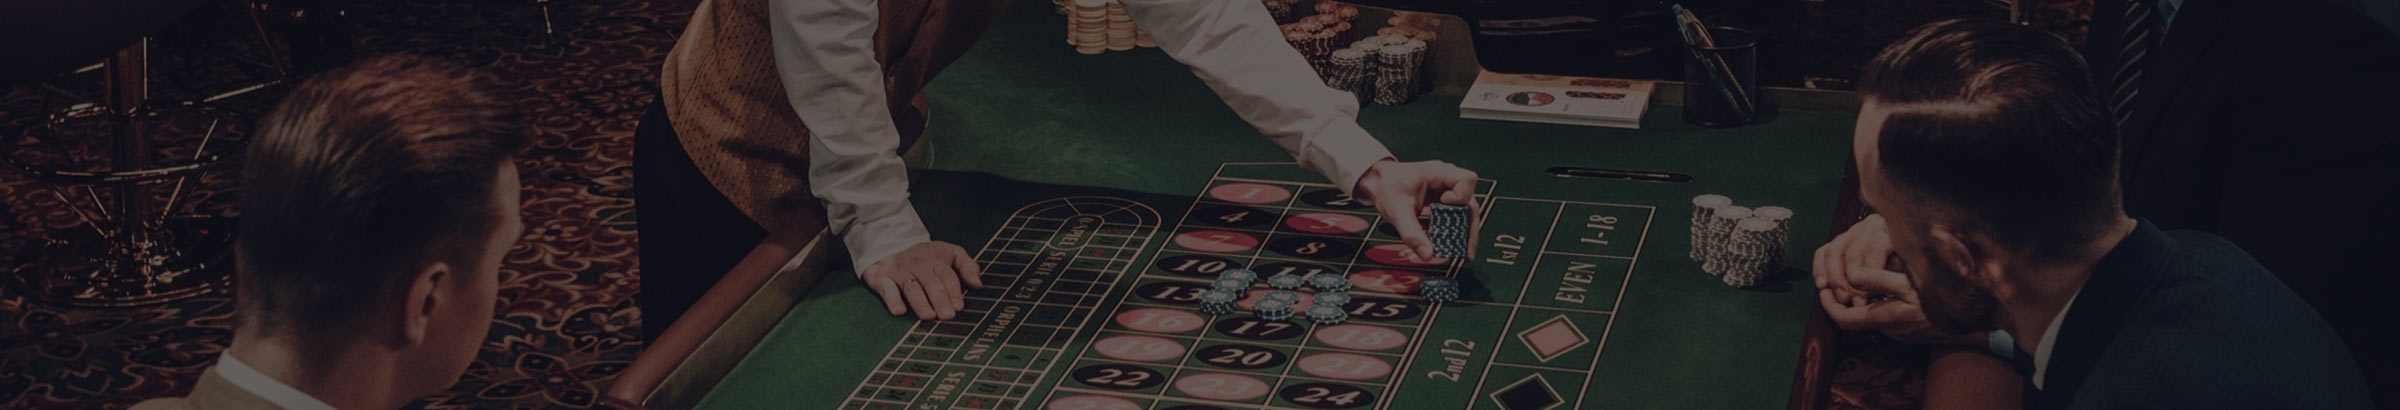 Live online roulette with a real dealer